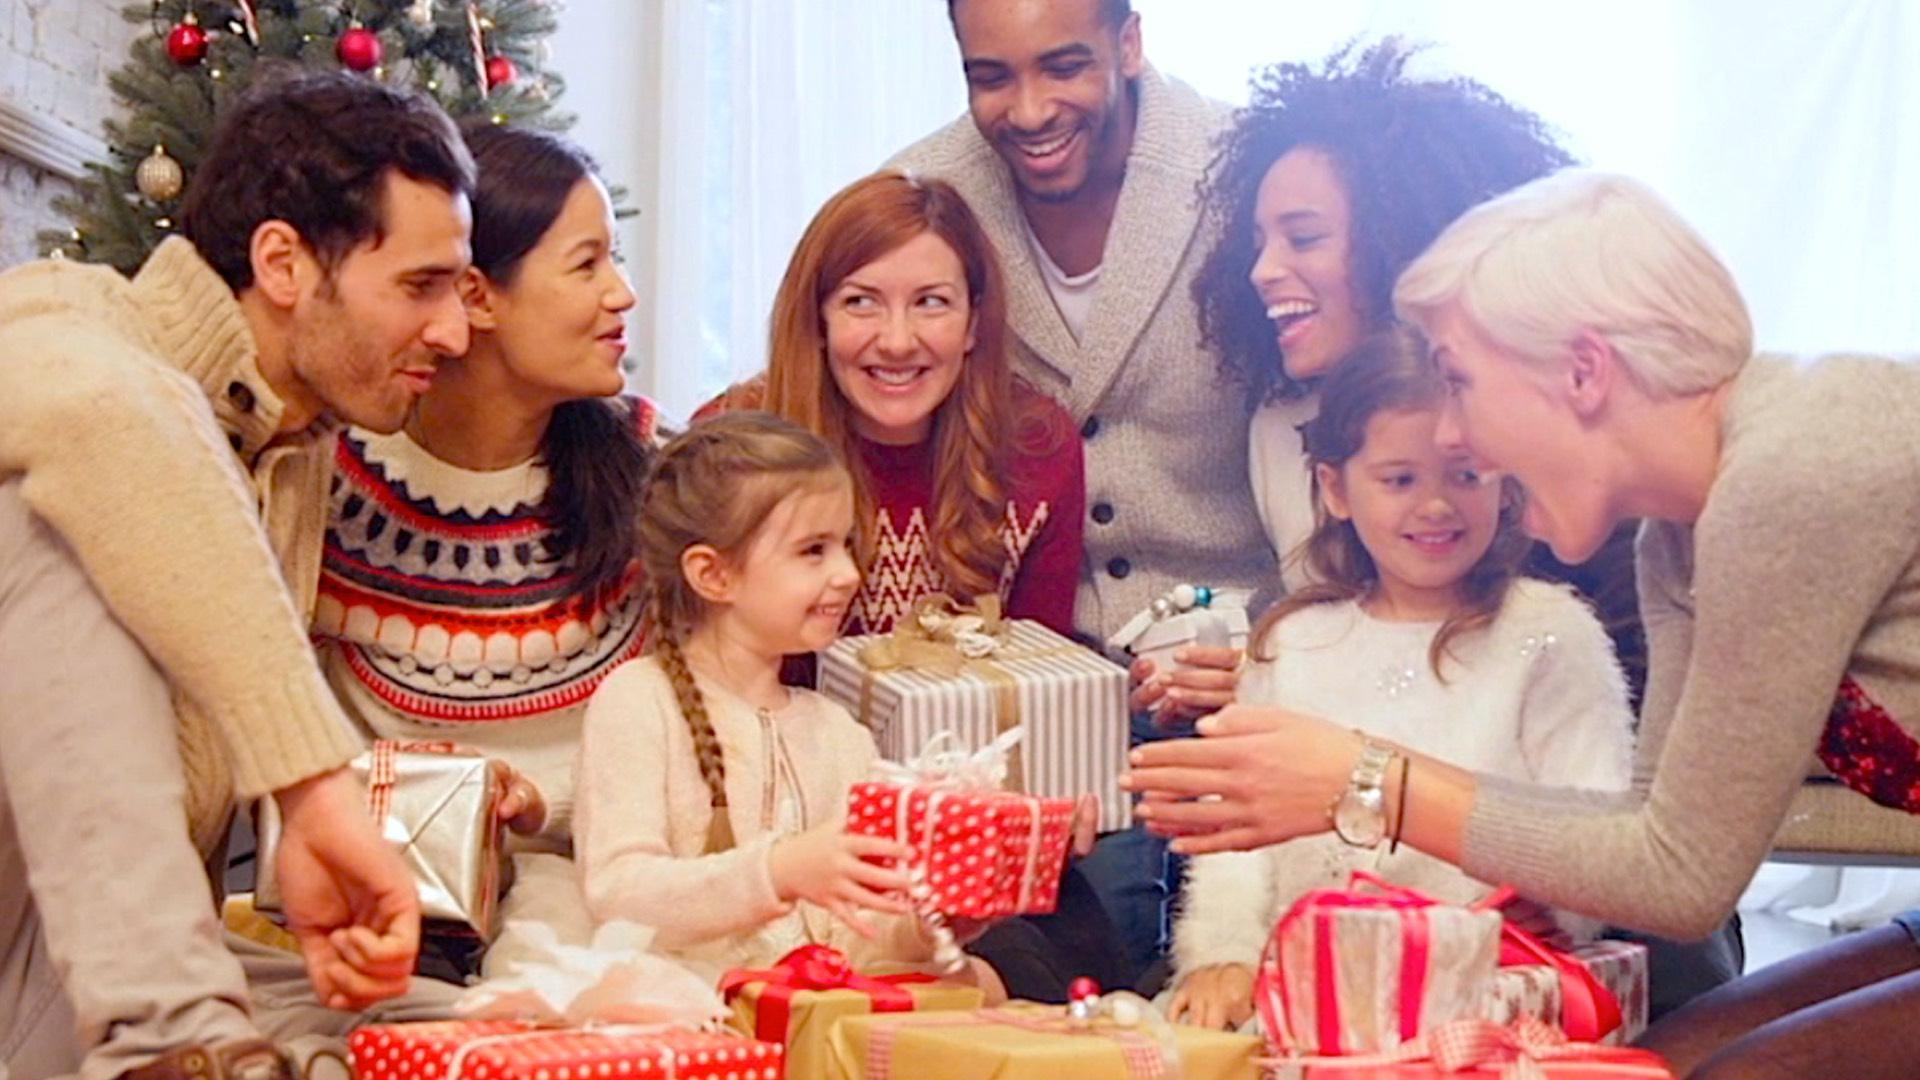 3 Apps Taking the Stress Out of the Holiday Season